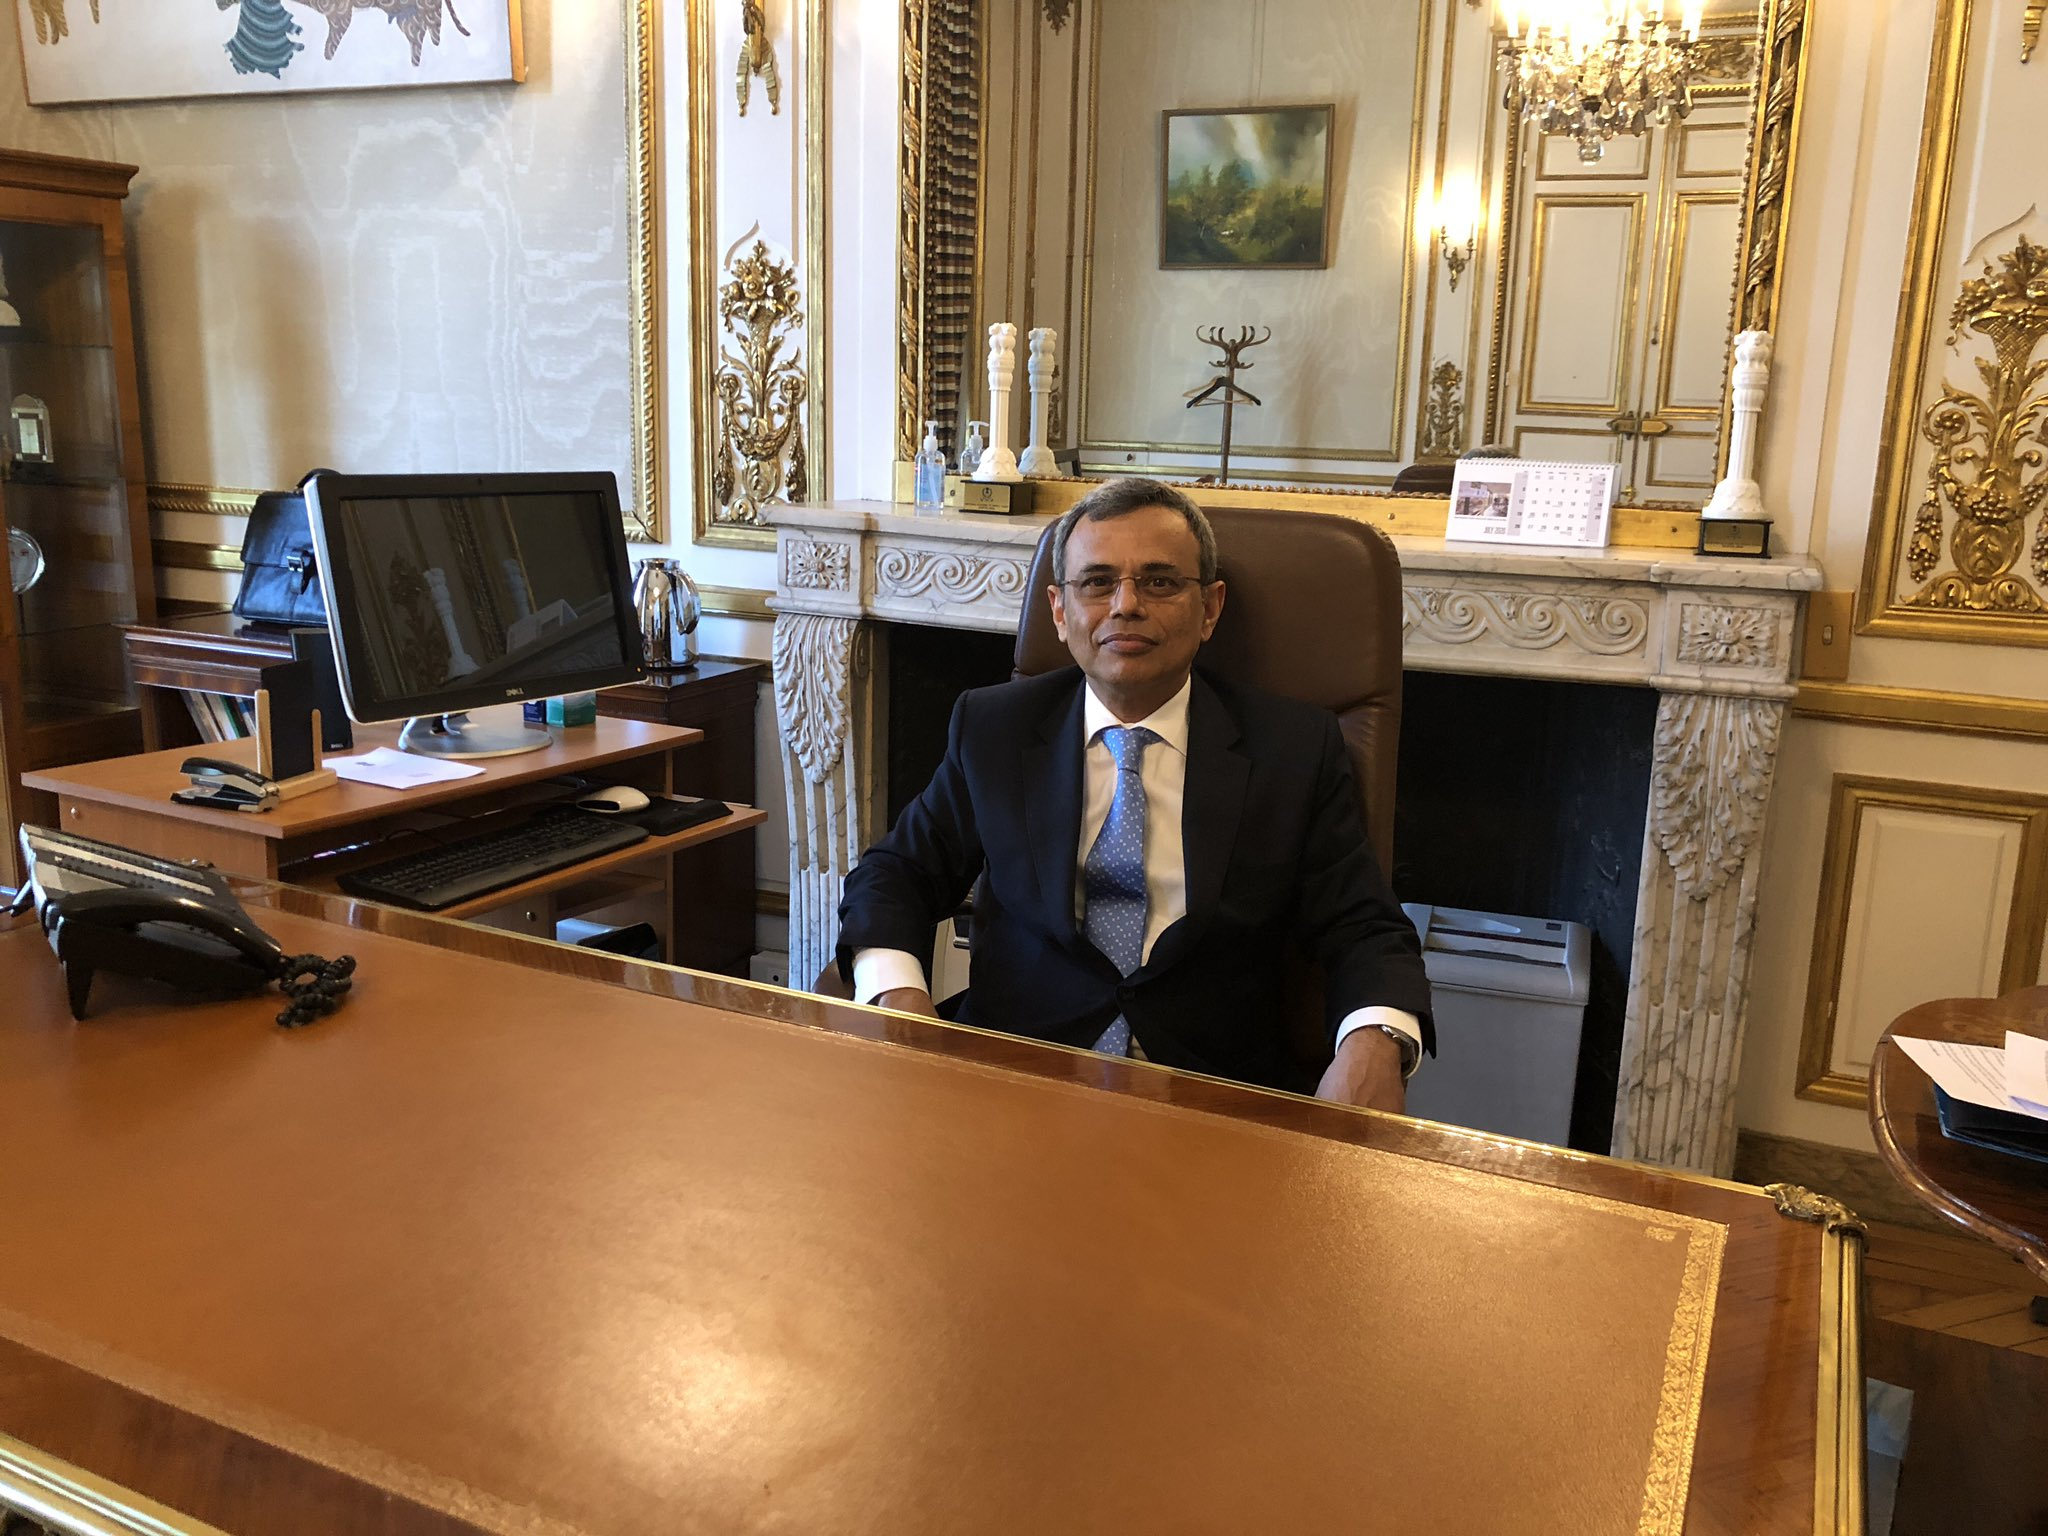 HE Jawed Ashraf has formally taken charge as Indian ambassador to France. Photo courtesy: Twitter/@JawedAshraf5